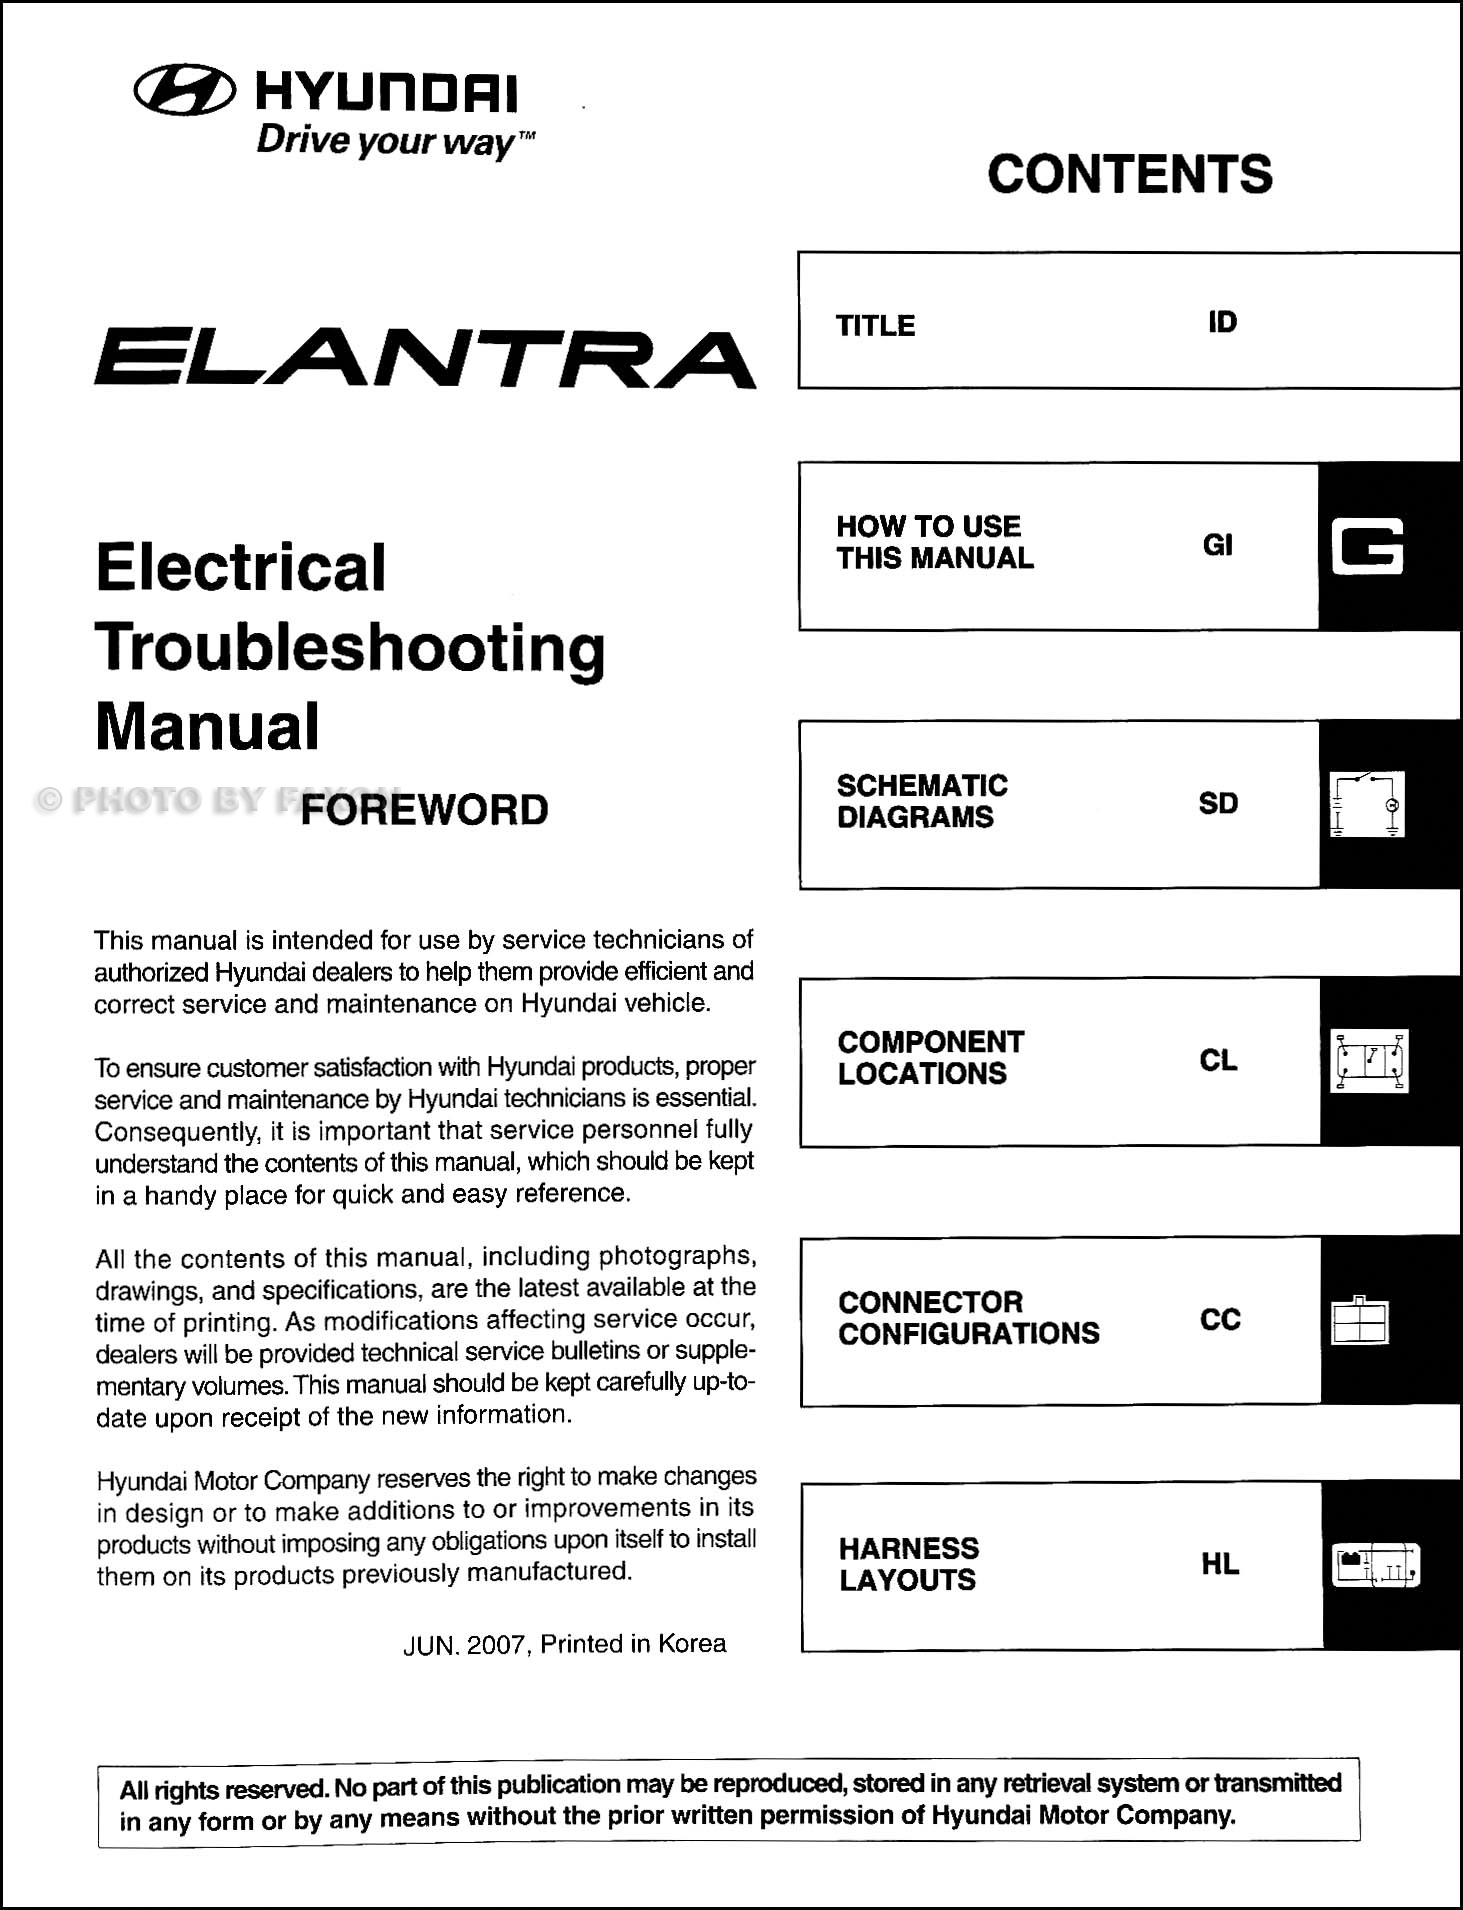 2008 Hyundai Elantra Electrical Troubleshooting Manual Original · Table of  Contents